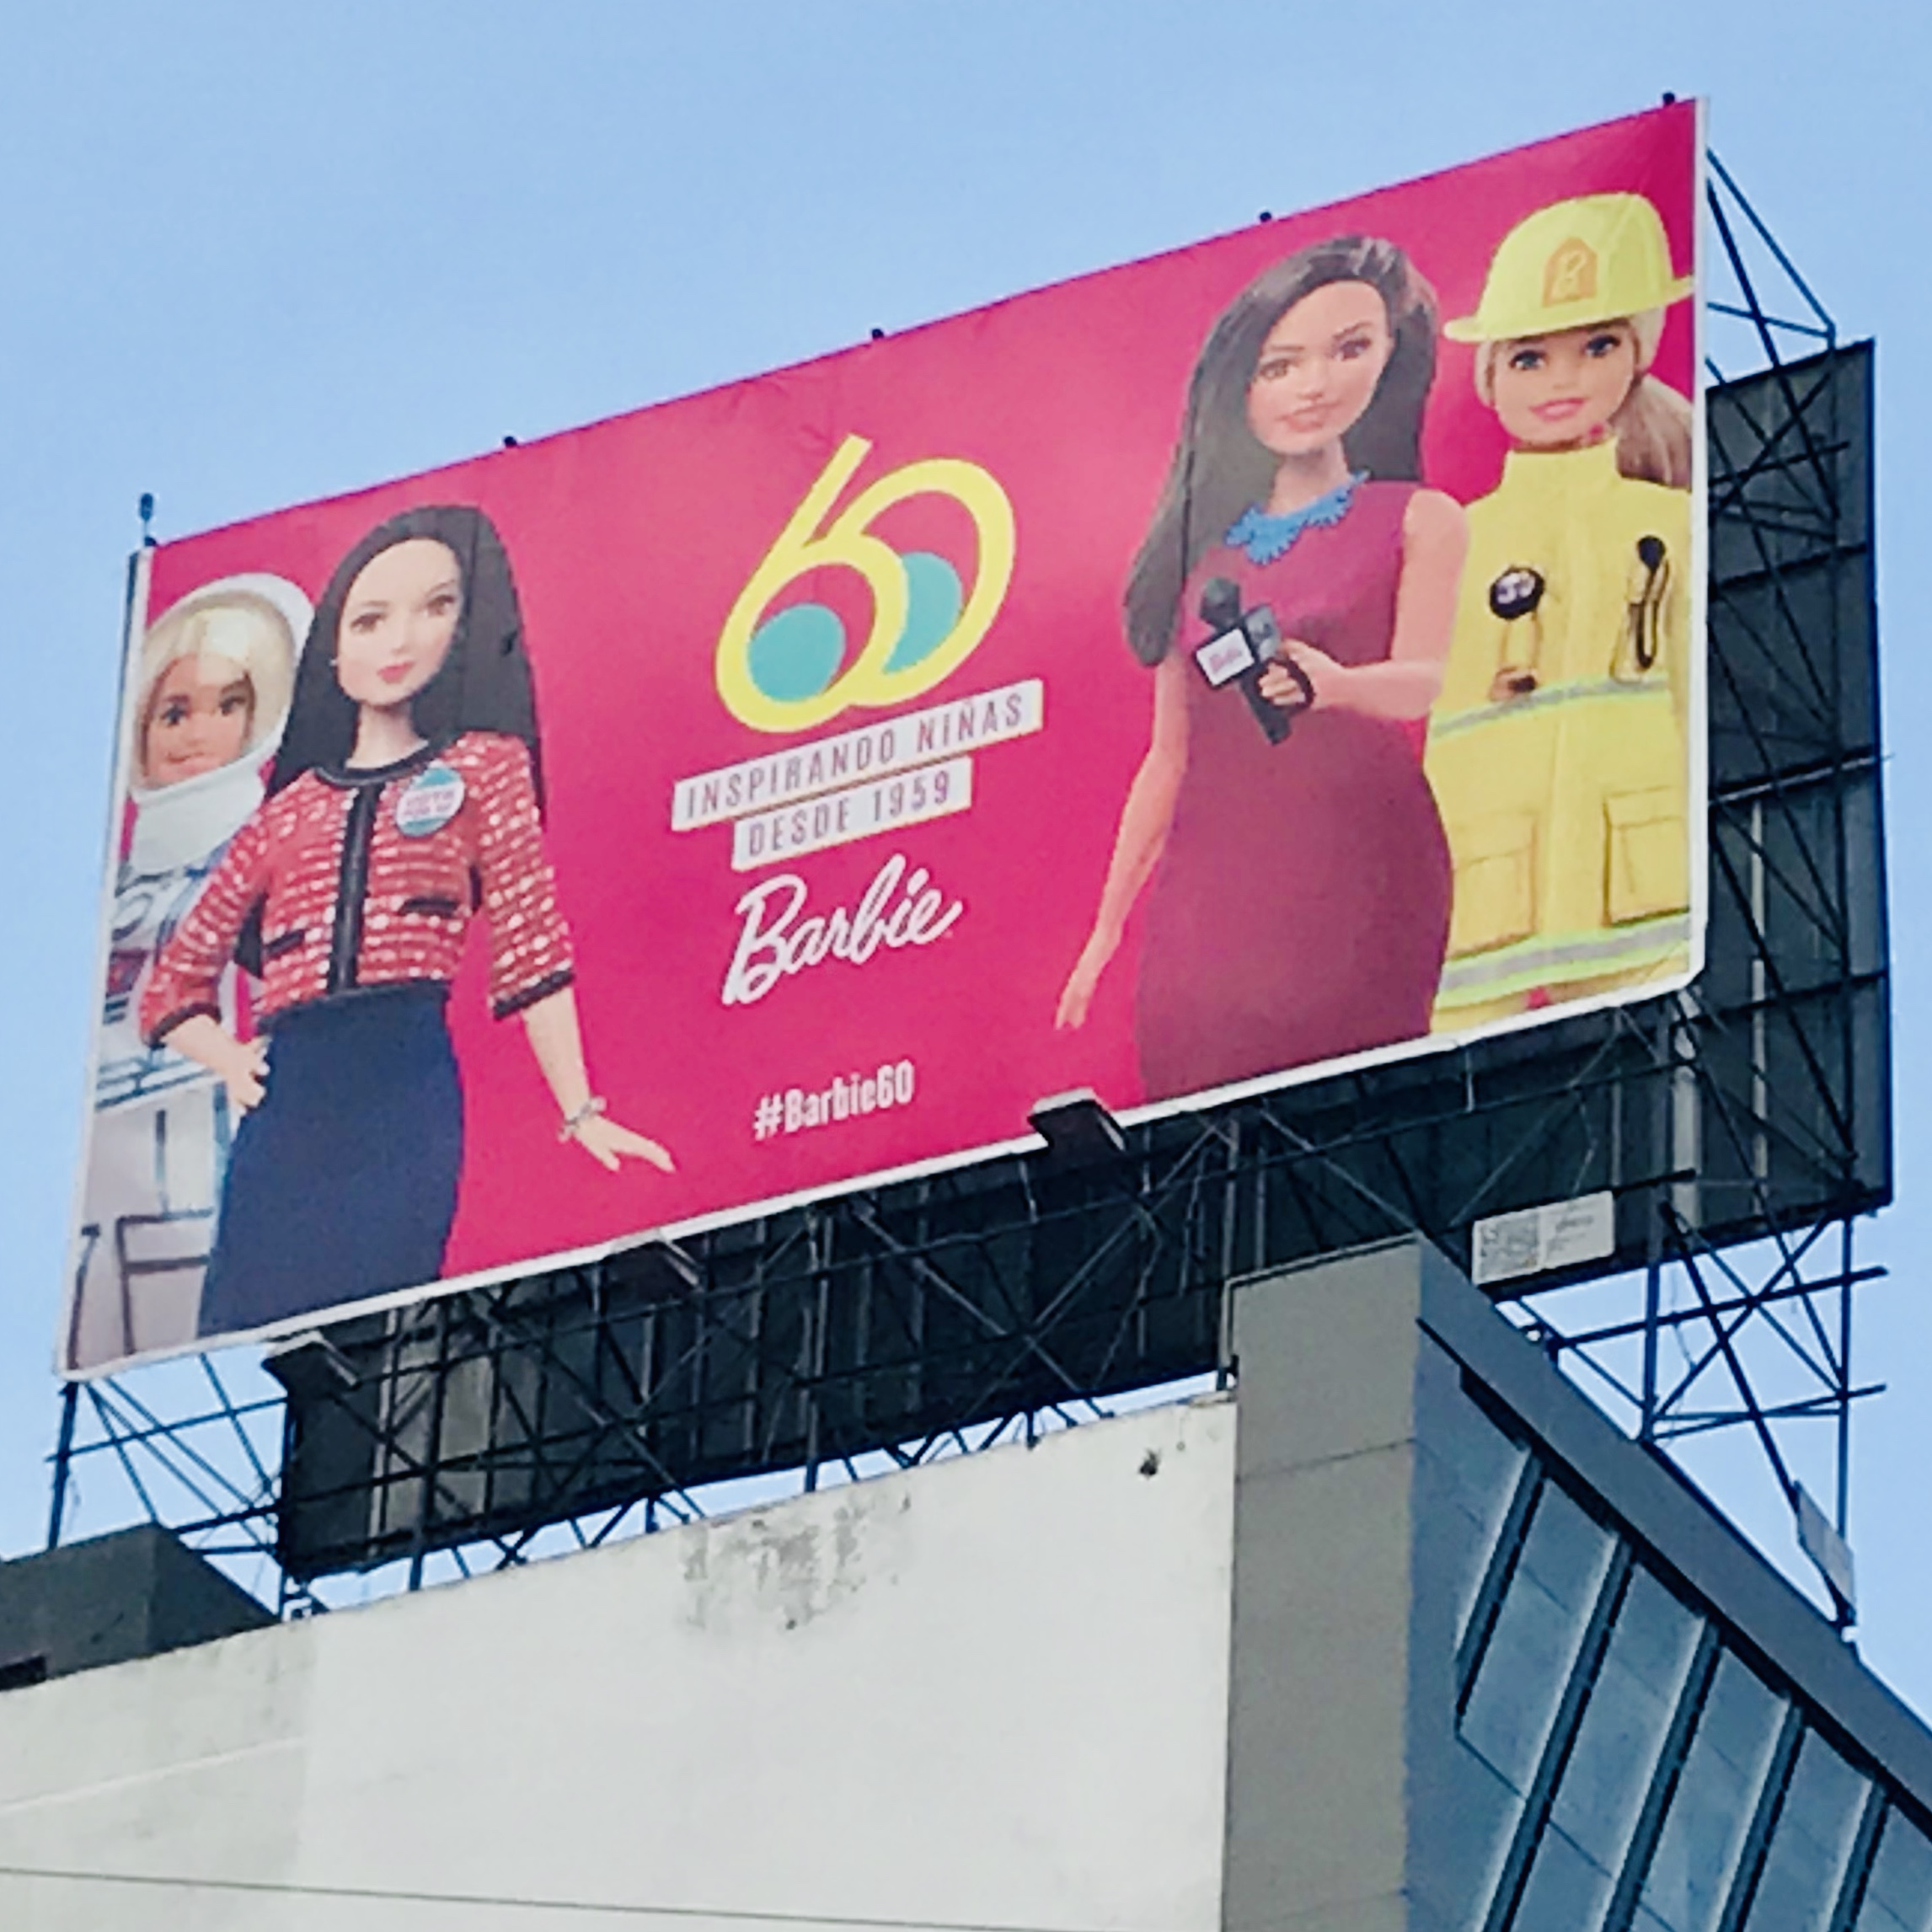 Researching while traveling in Mexico City in April 2019…Barbie seemed to be everywhere I looked!